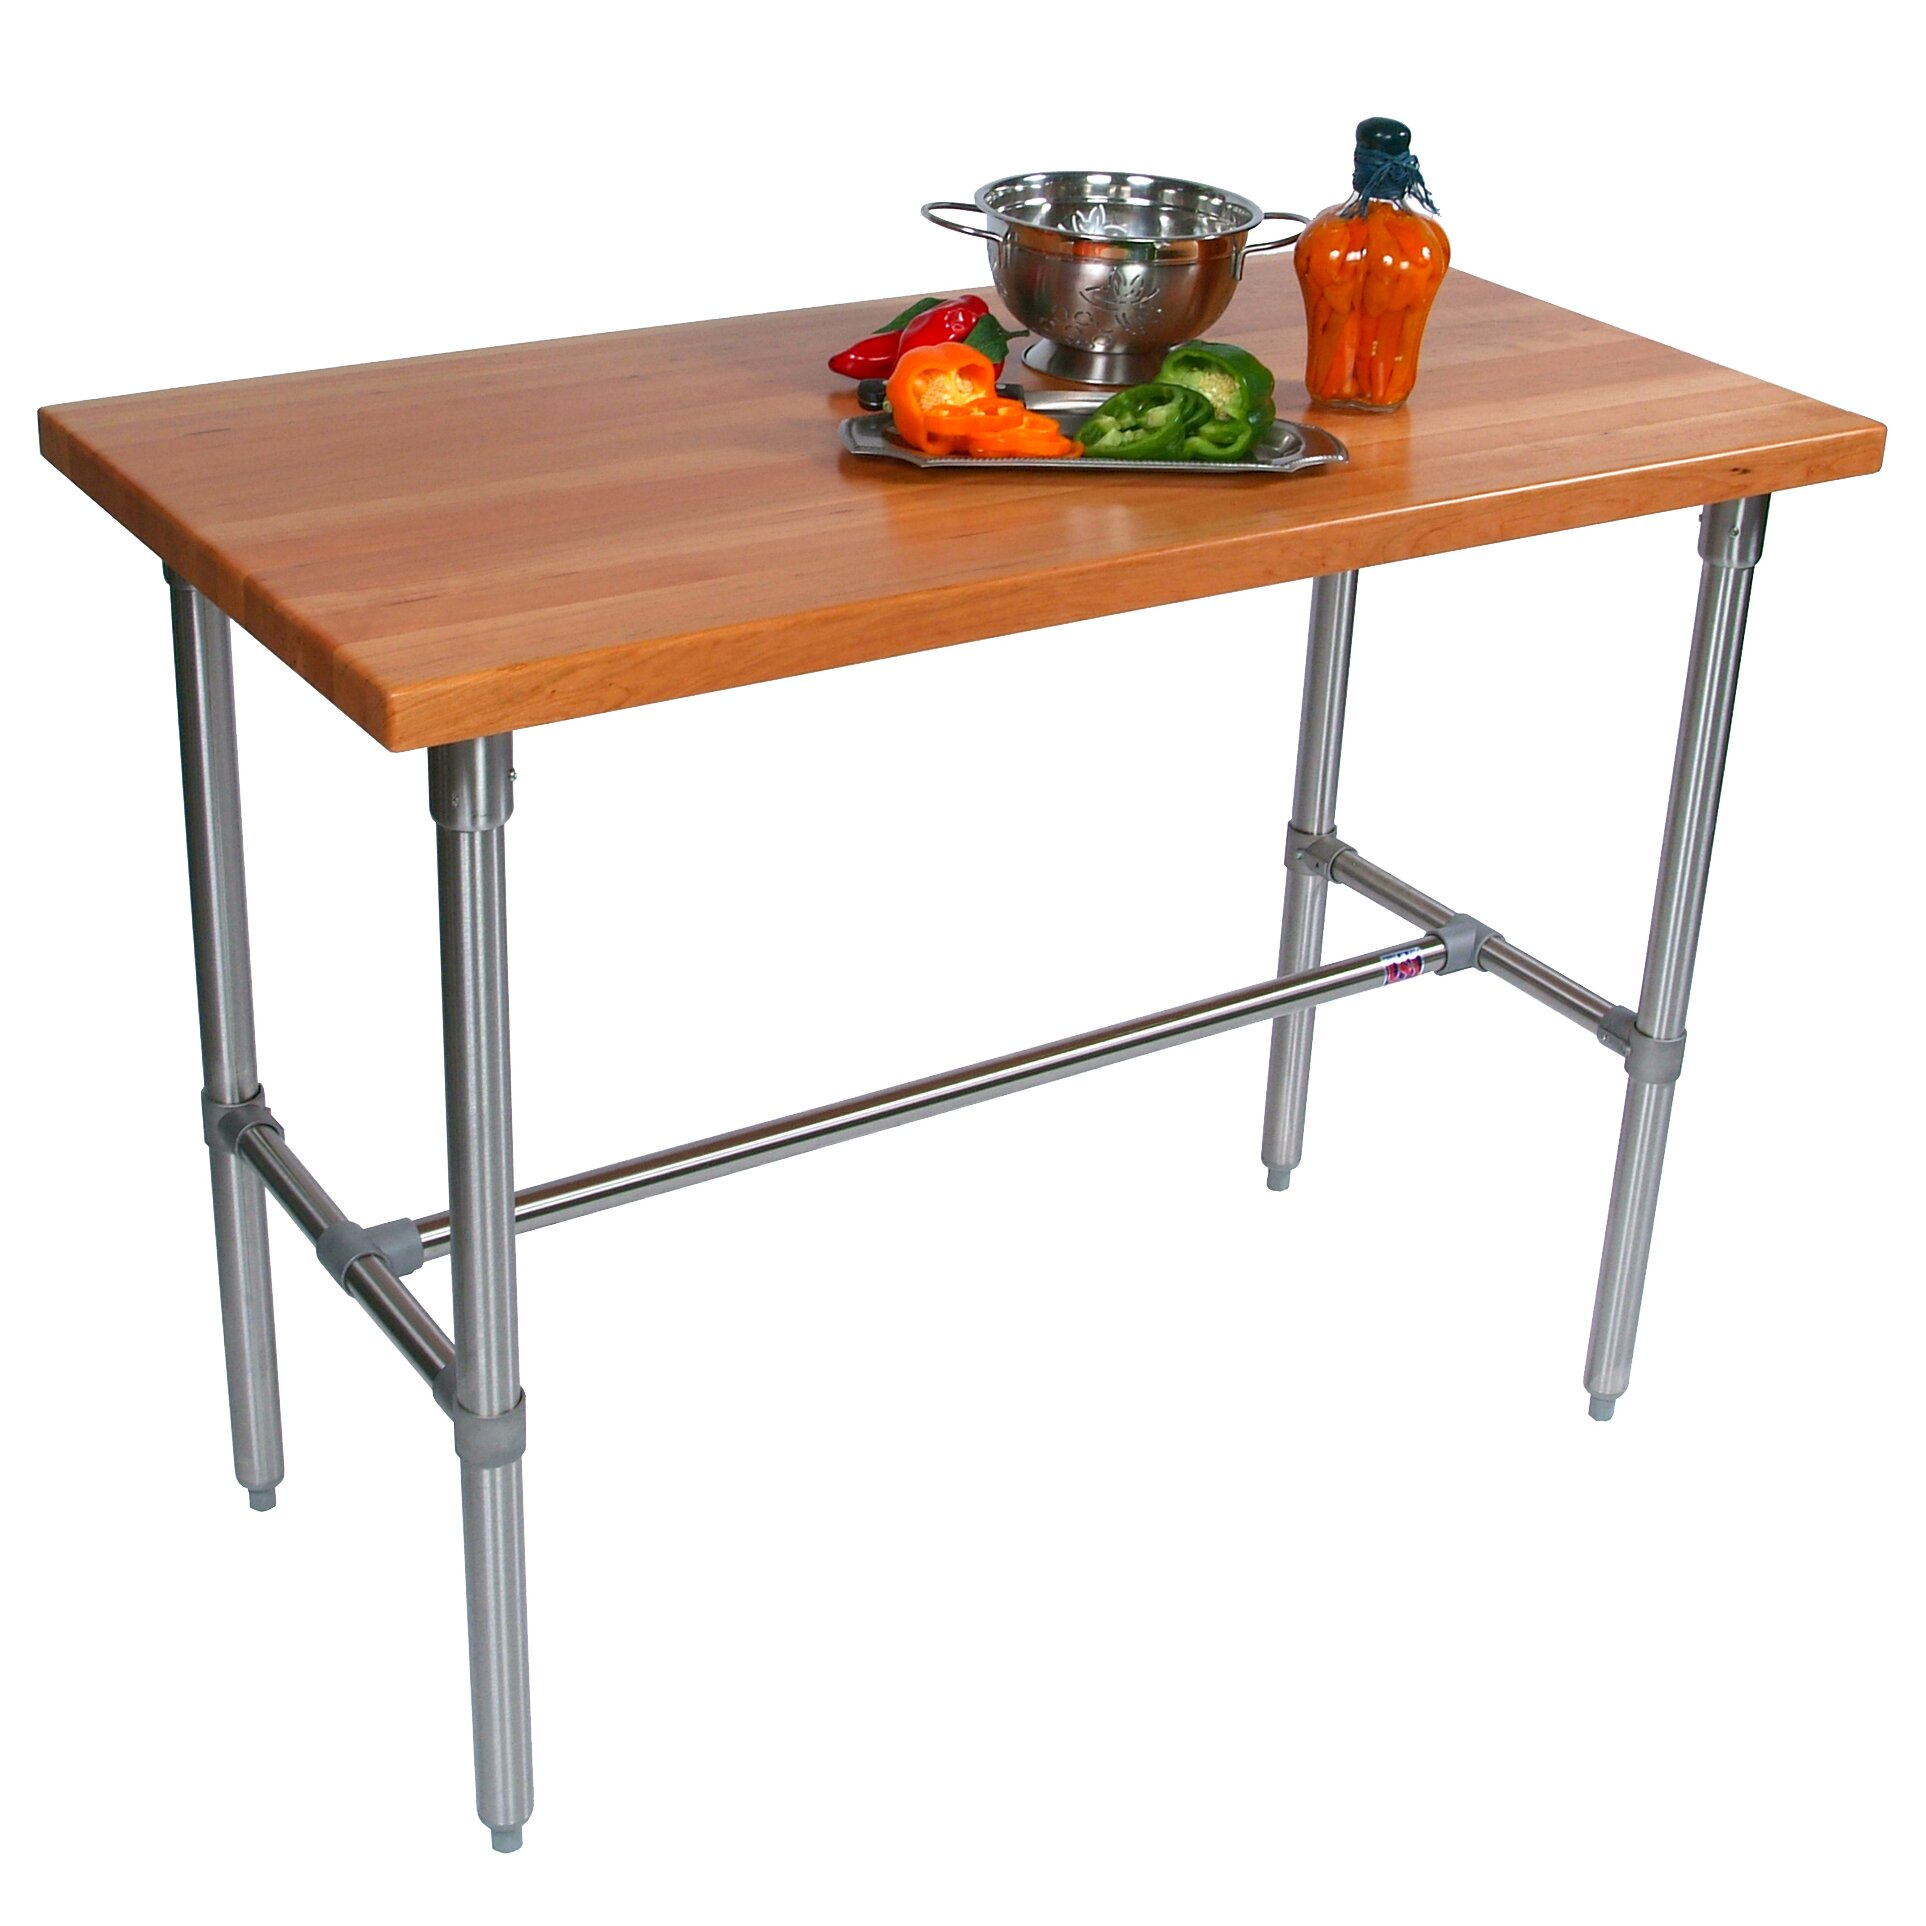 Furniture Kitchen & Dining Furniture Kitchen and Dining Tables John ...